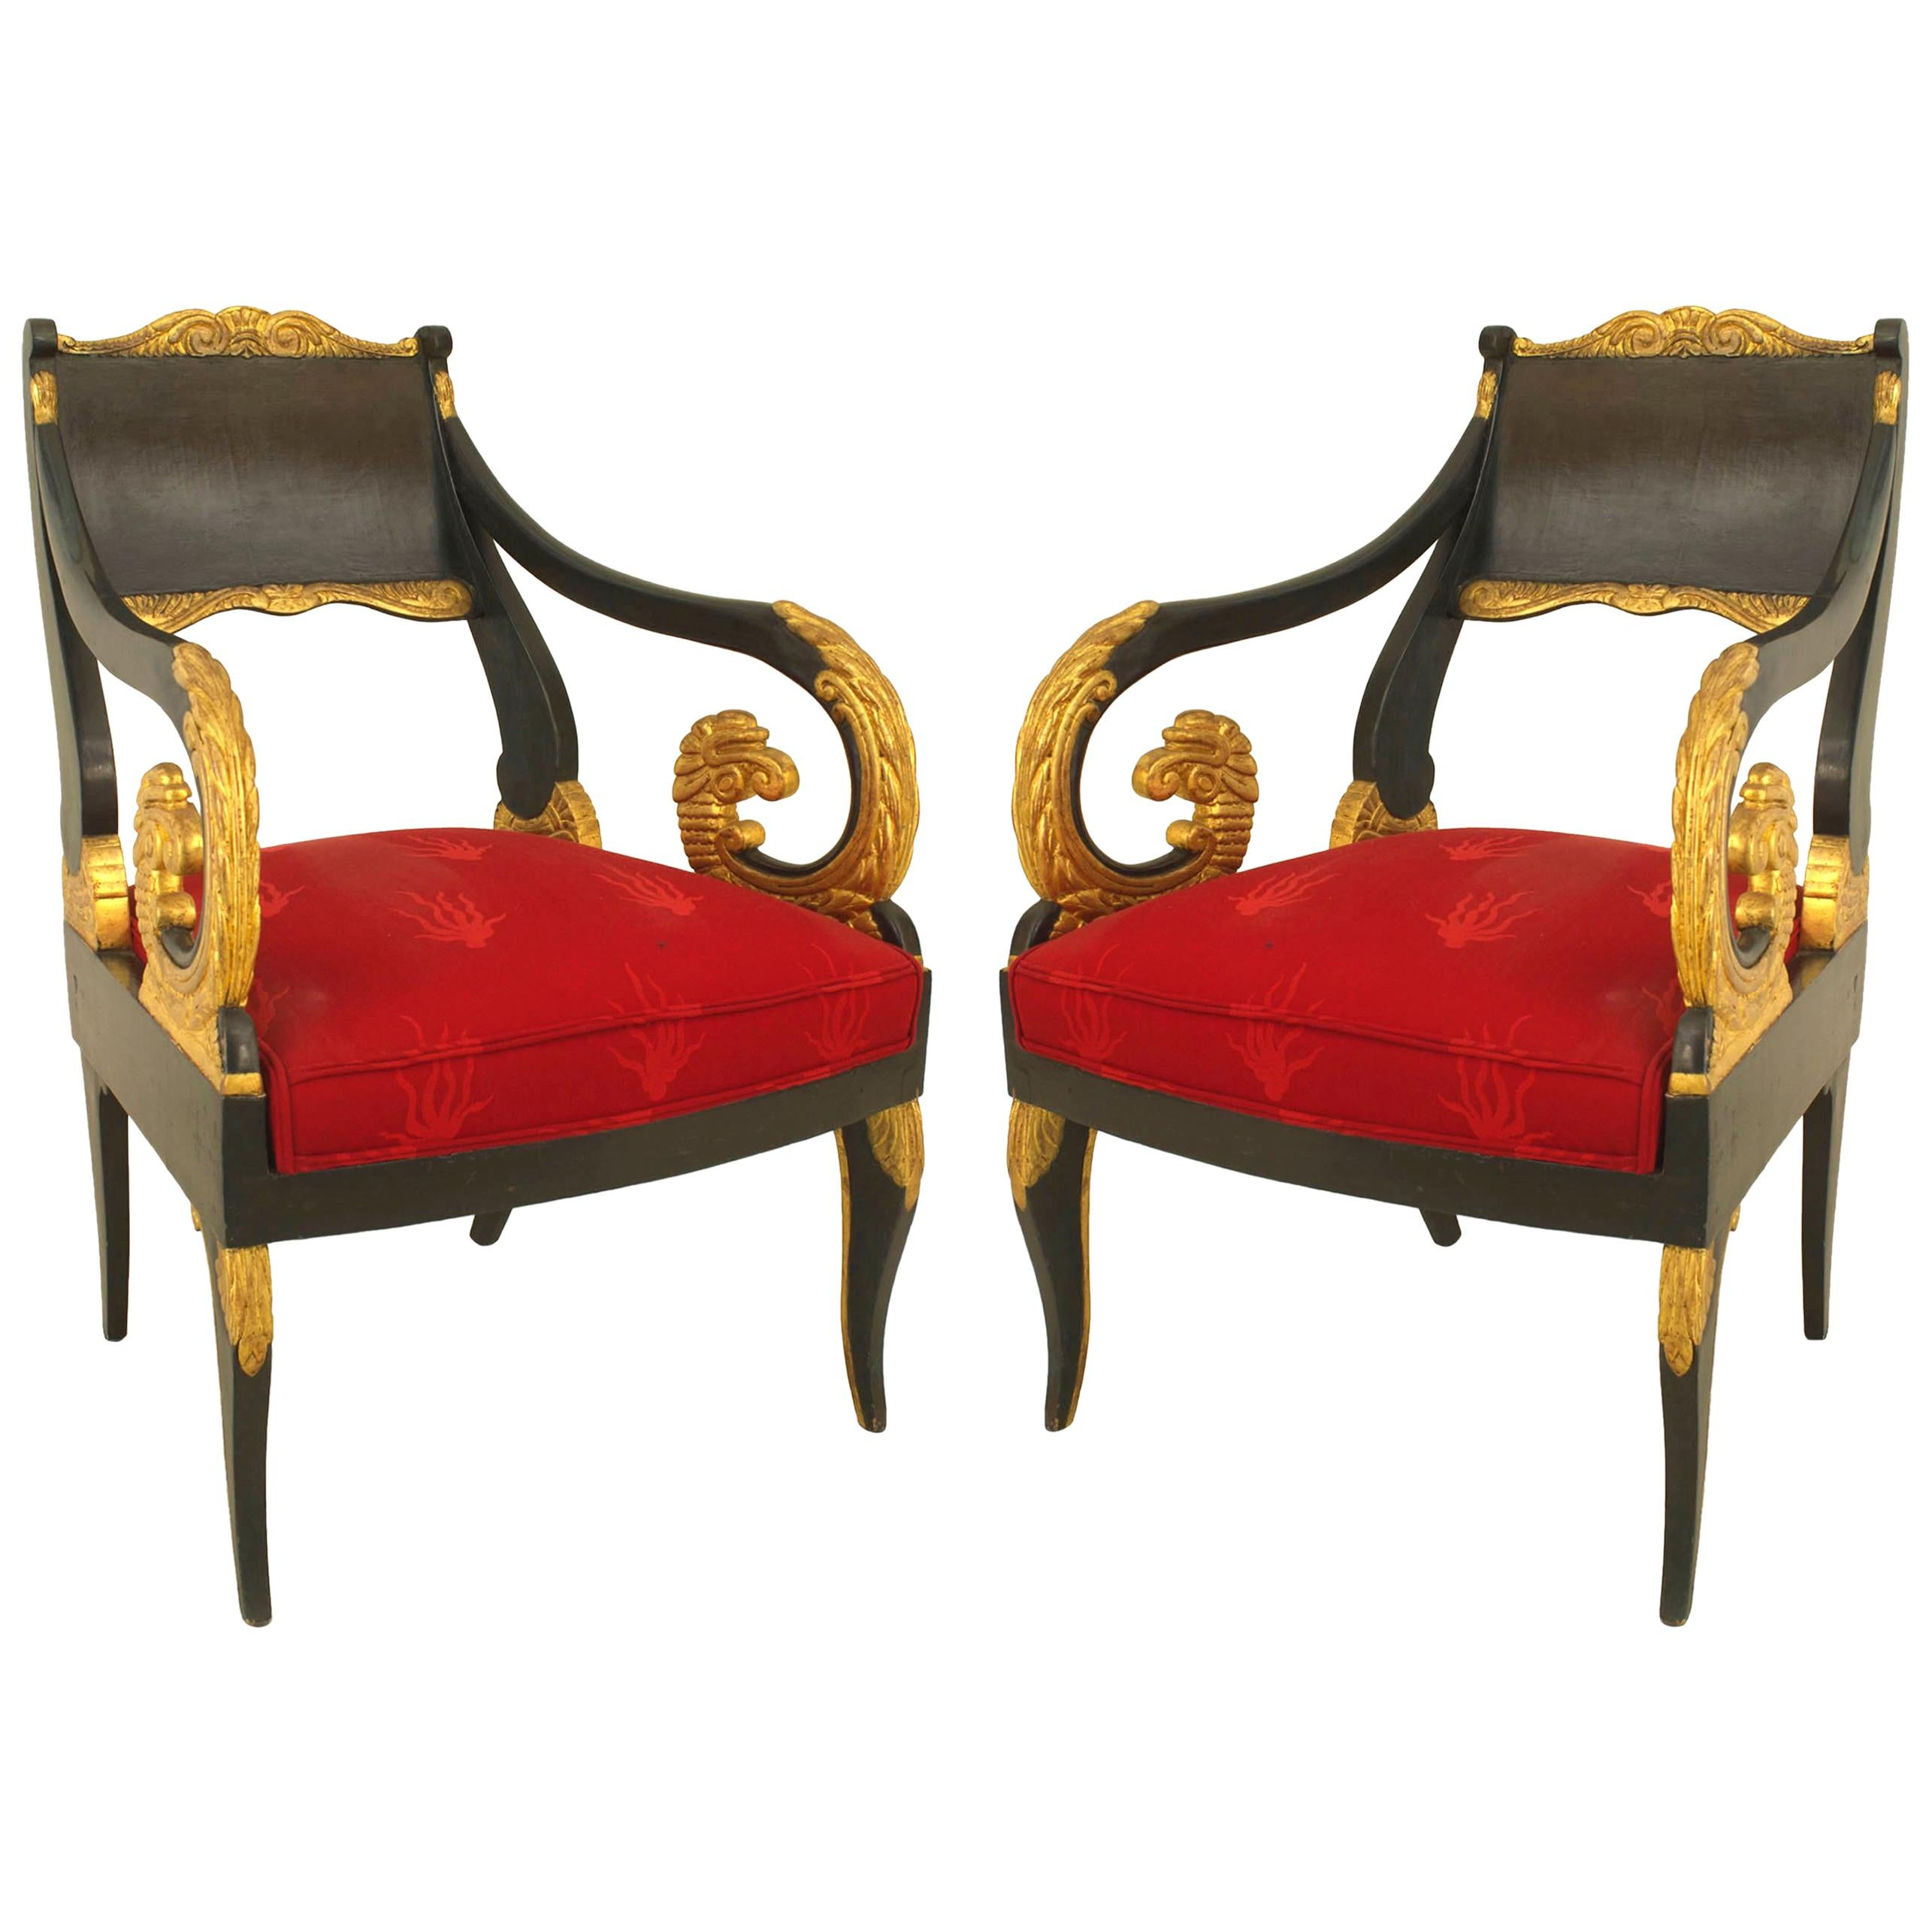 Pair of Russian Neoclassic Painted and Parcel Gilt Armchairs